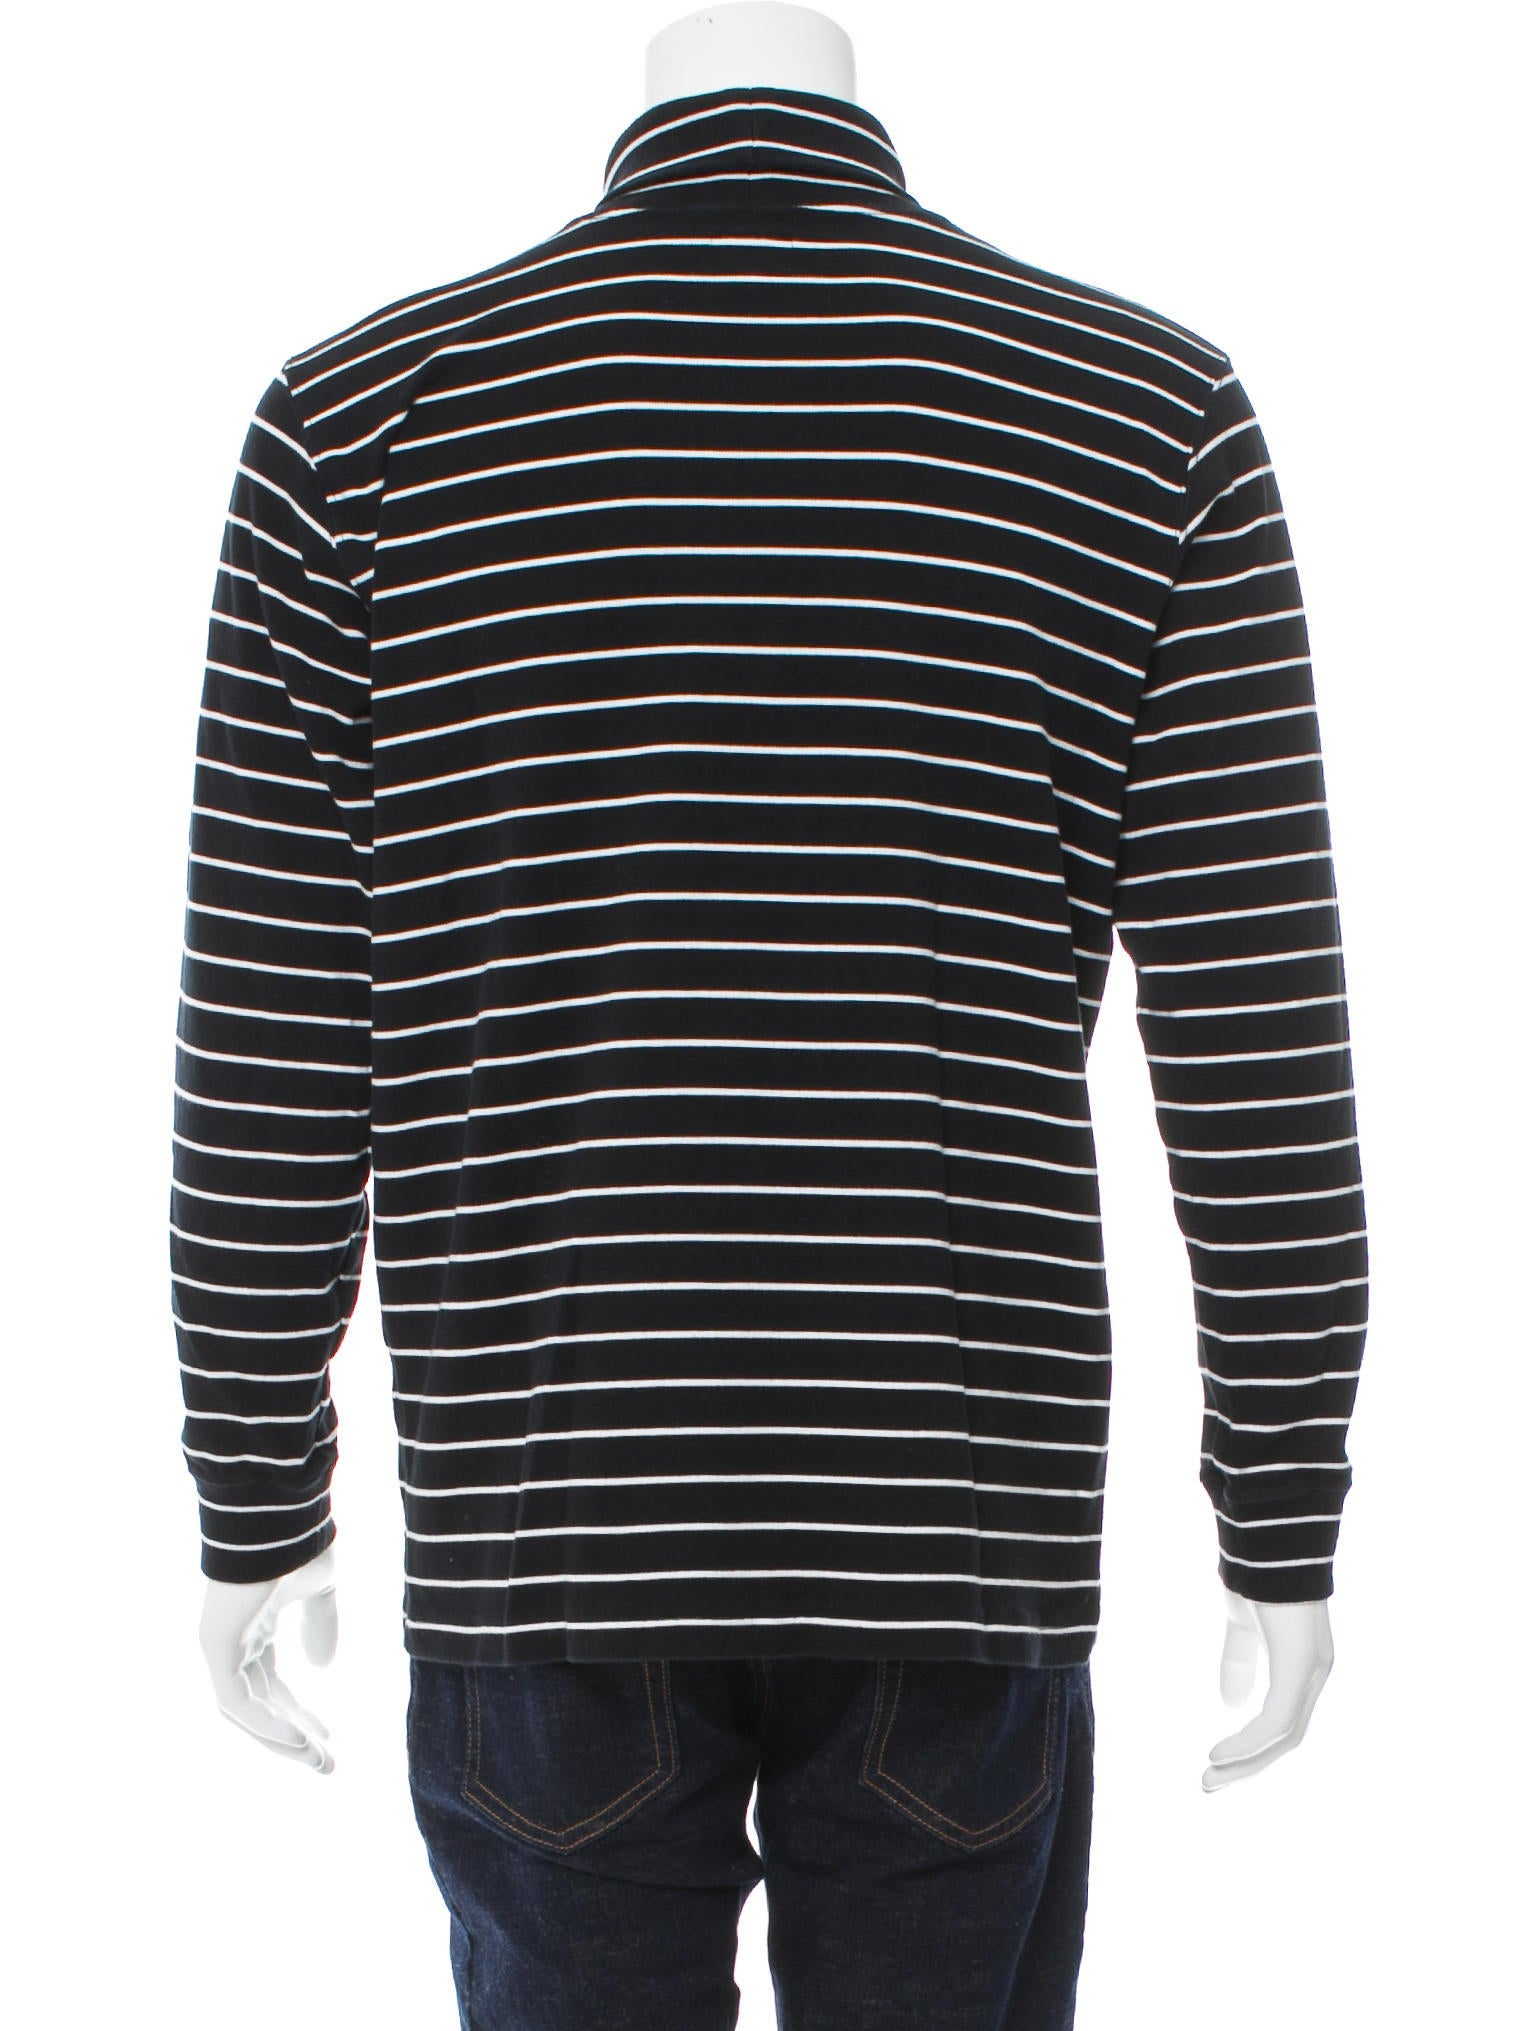 Supreme 2016 Striped Turtleneck Sweater - Clothing - WSPME20315 ...